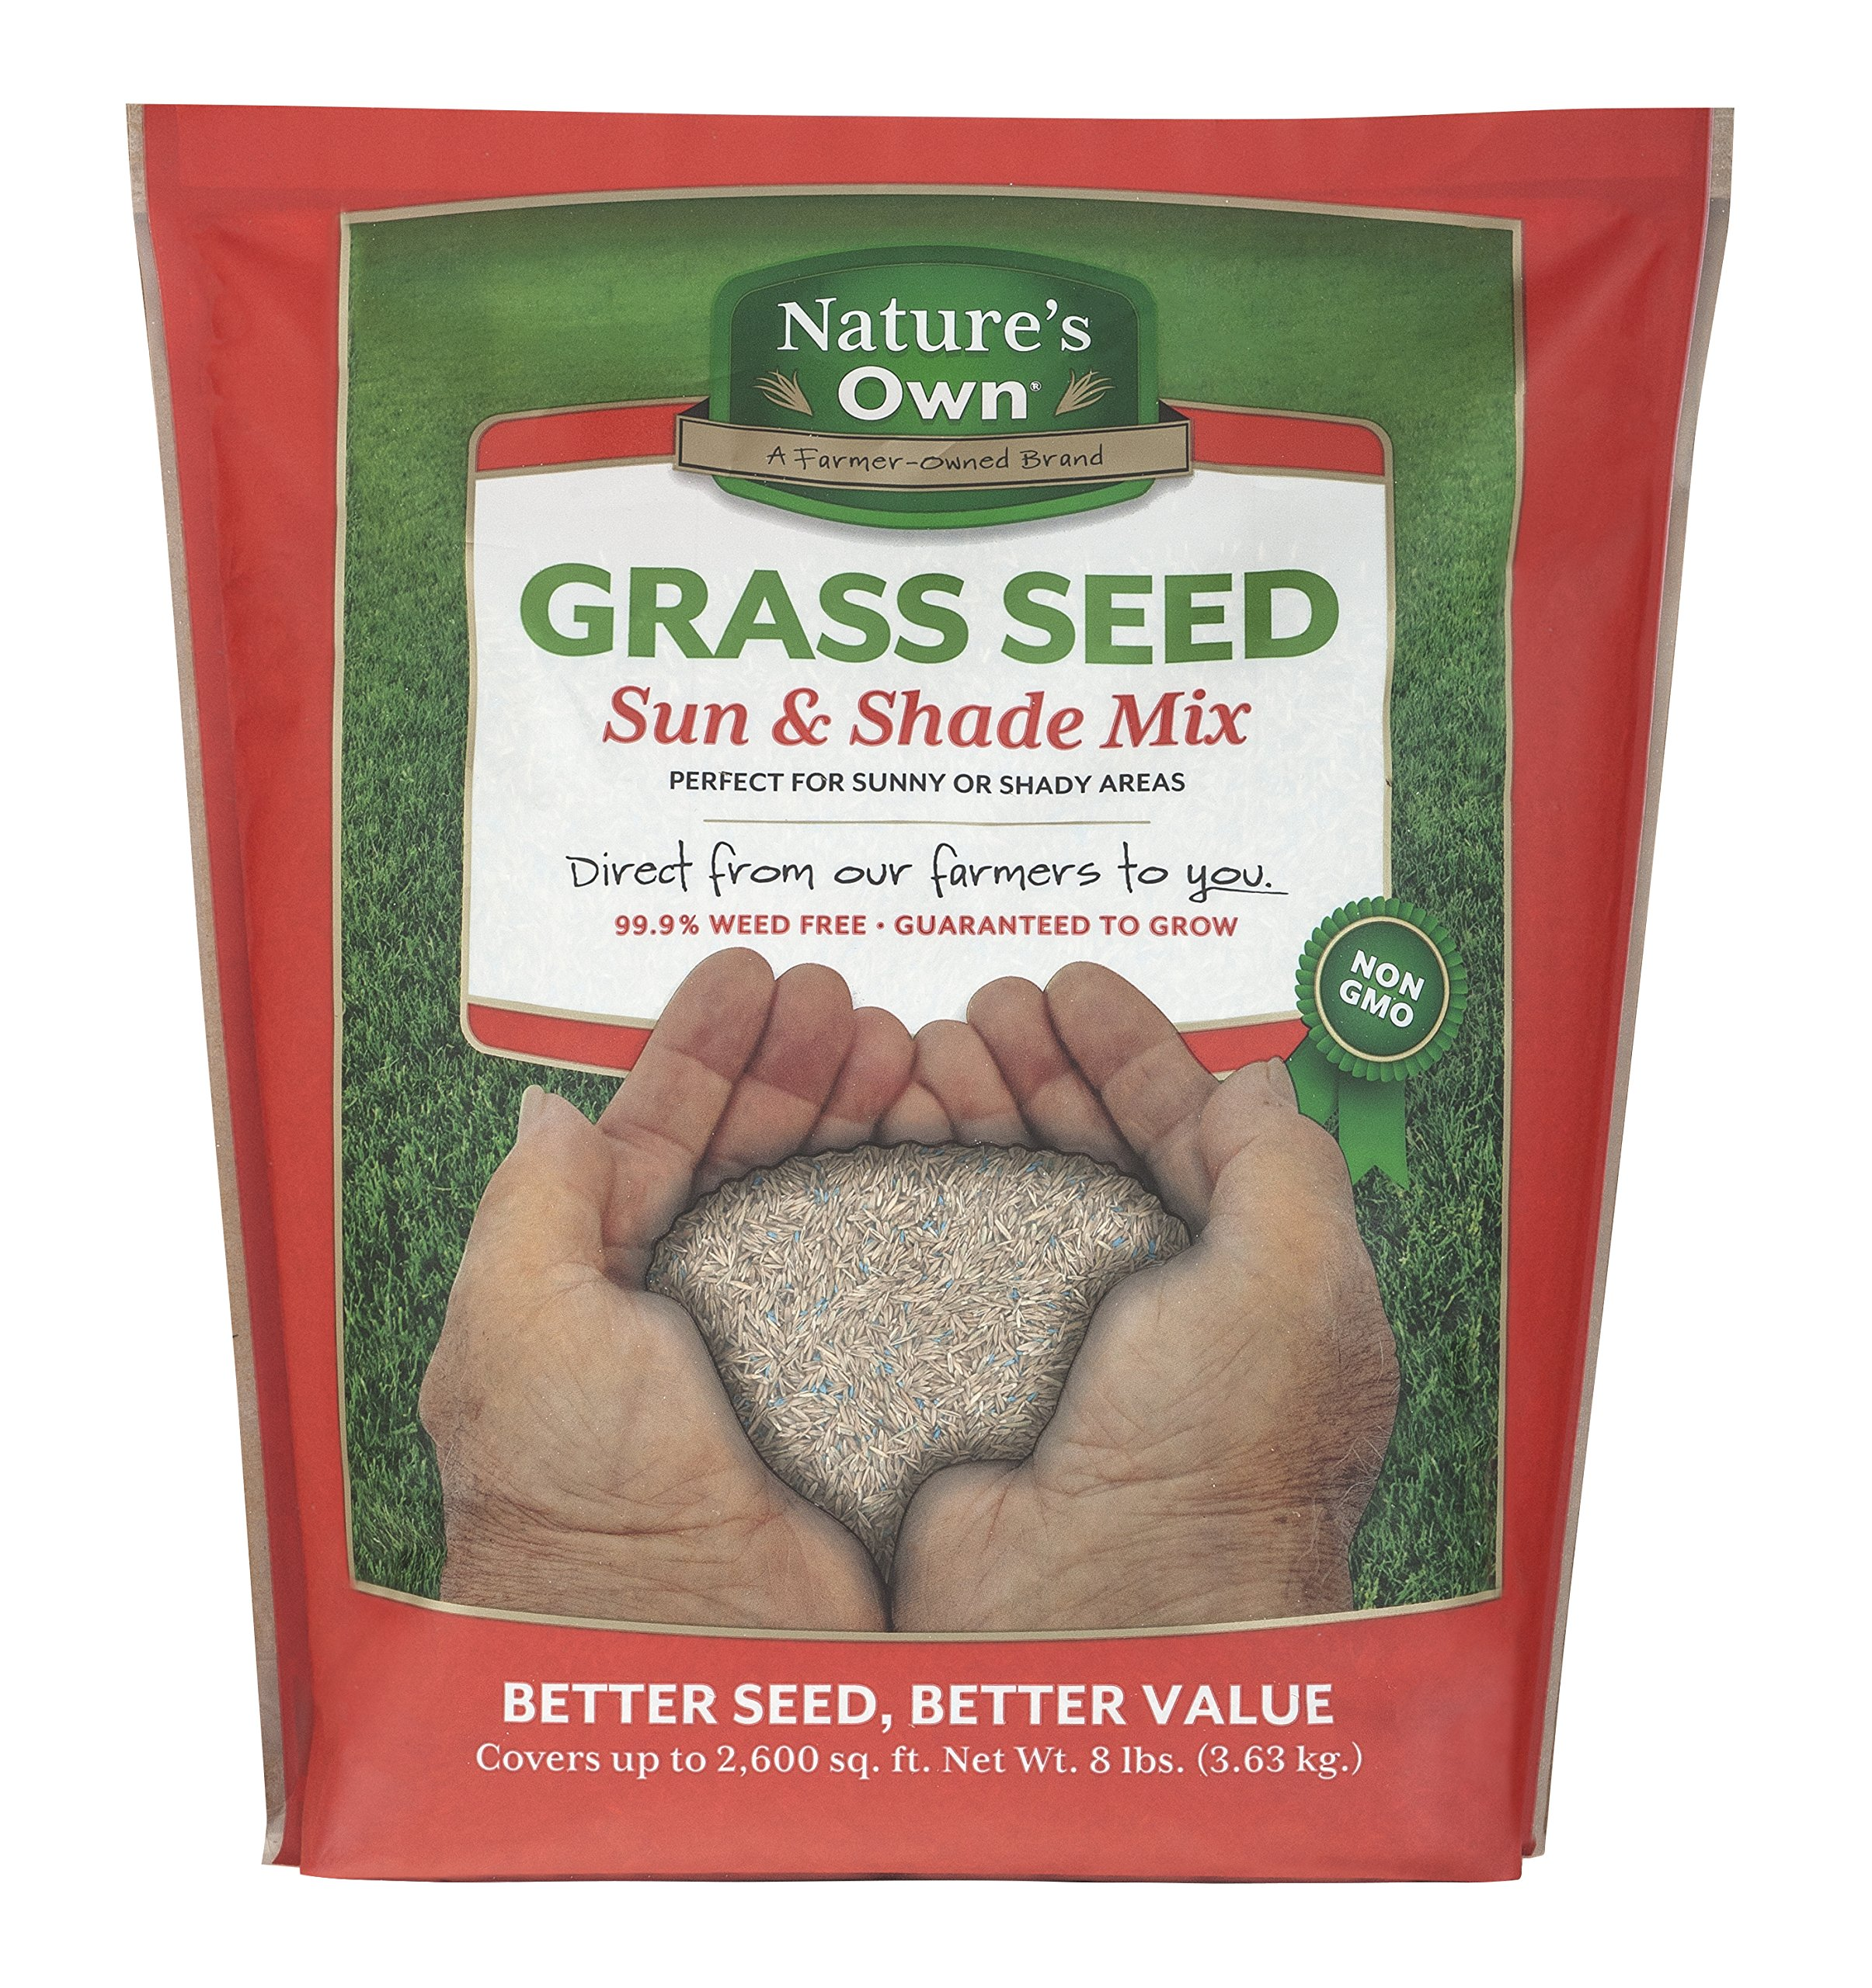 Mountain View Seeds Natures Own Sun & Shade Mix Grass Seed, 8-pounds by Mountain View Seed